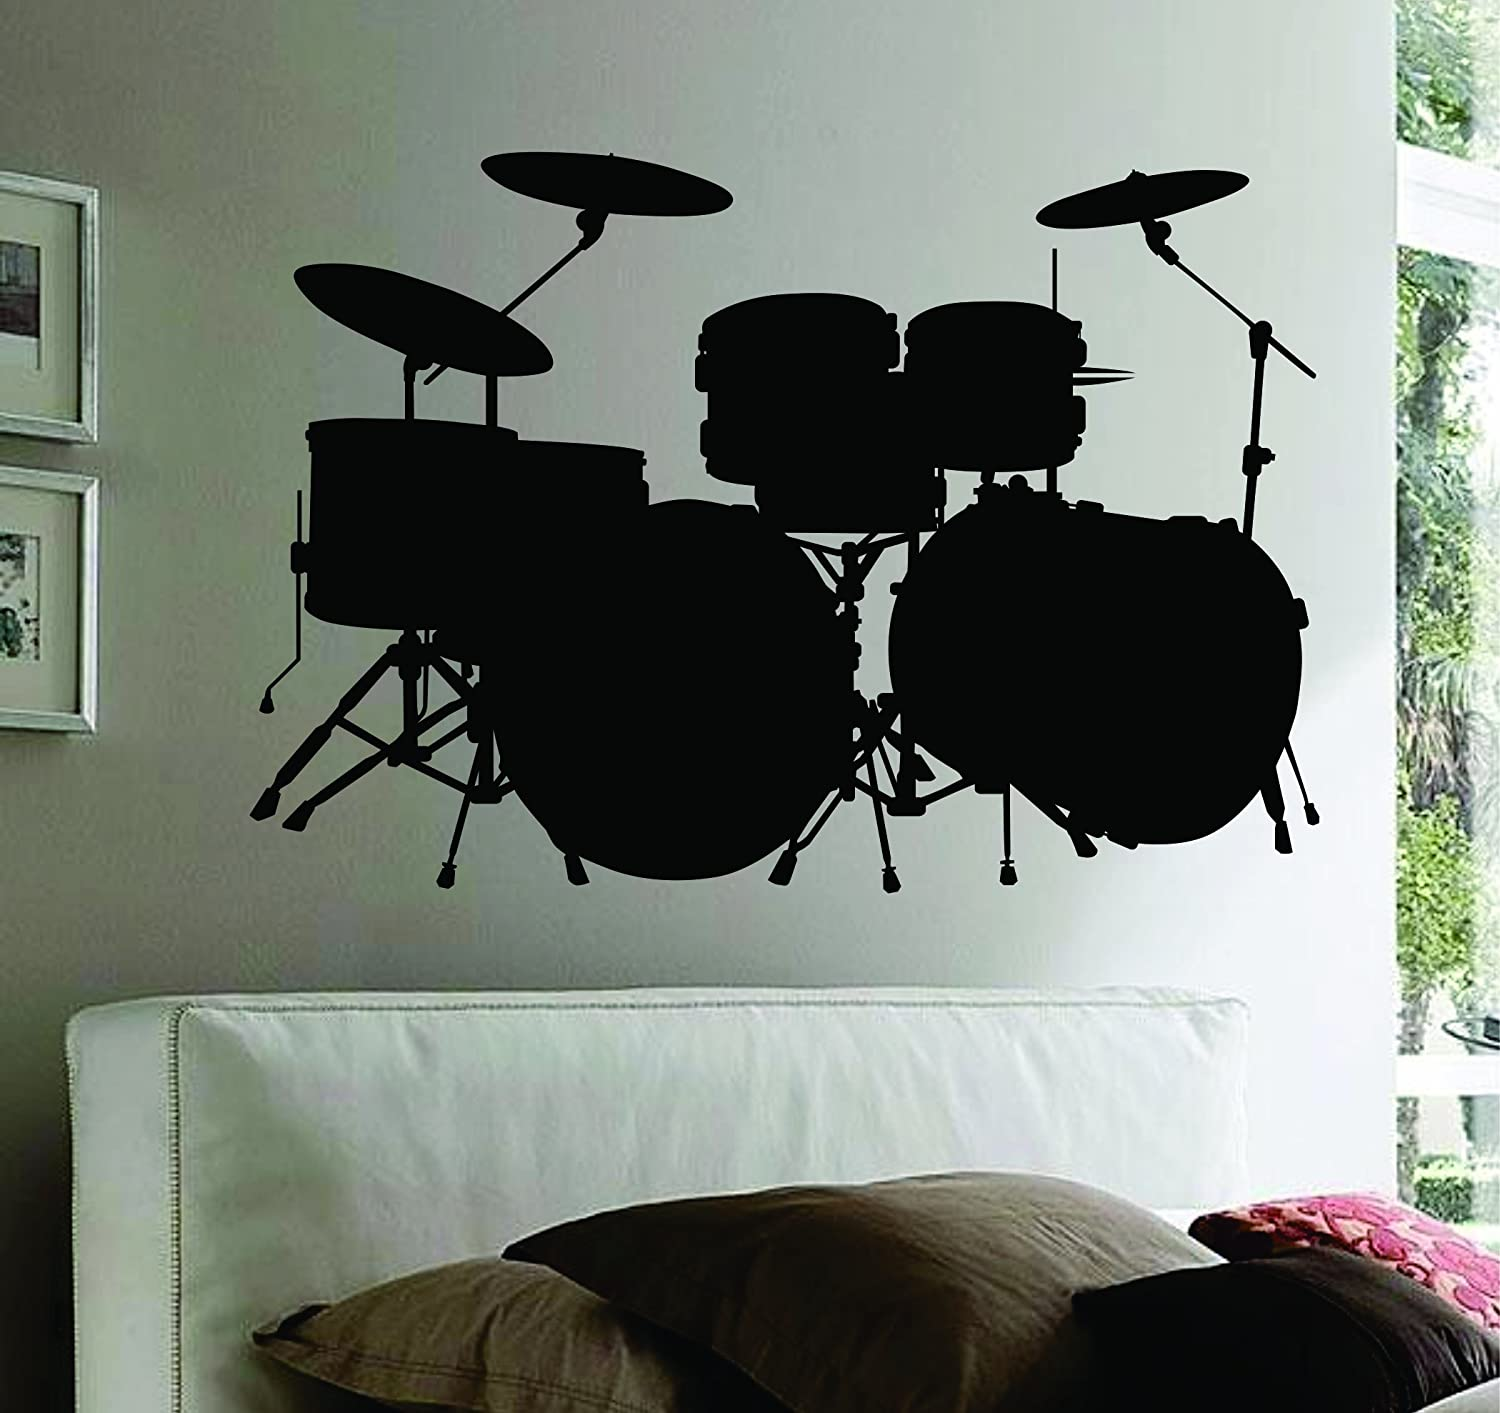 dabbledown decals wall mural music drums drummer band drumstick dabbledown decals wall mural music drums drummer band drumstick percussion sticker amazon com